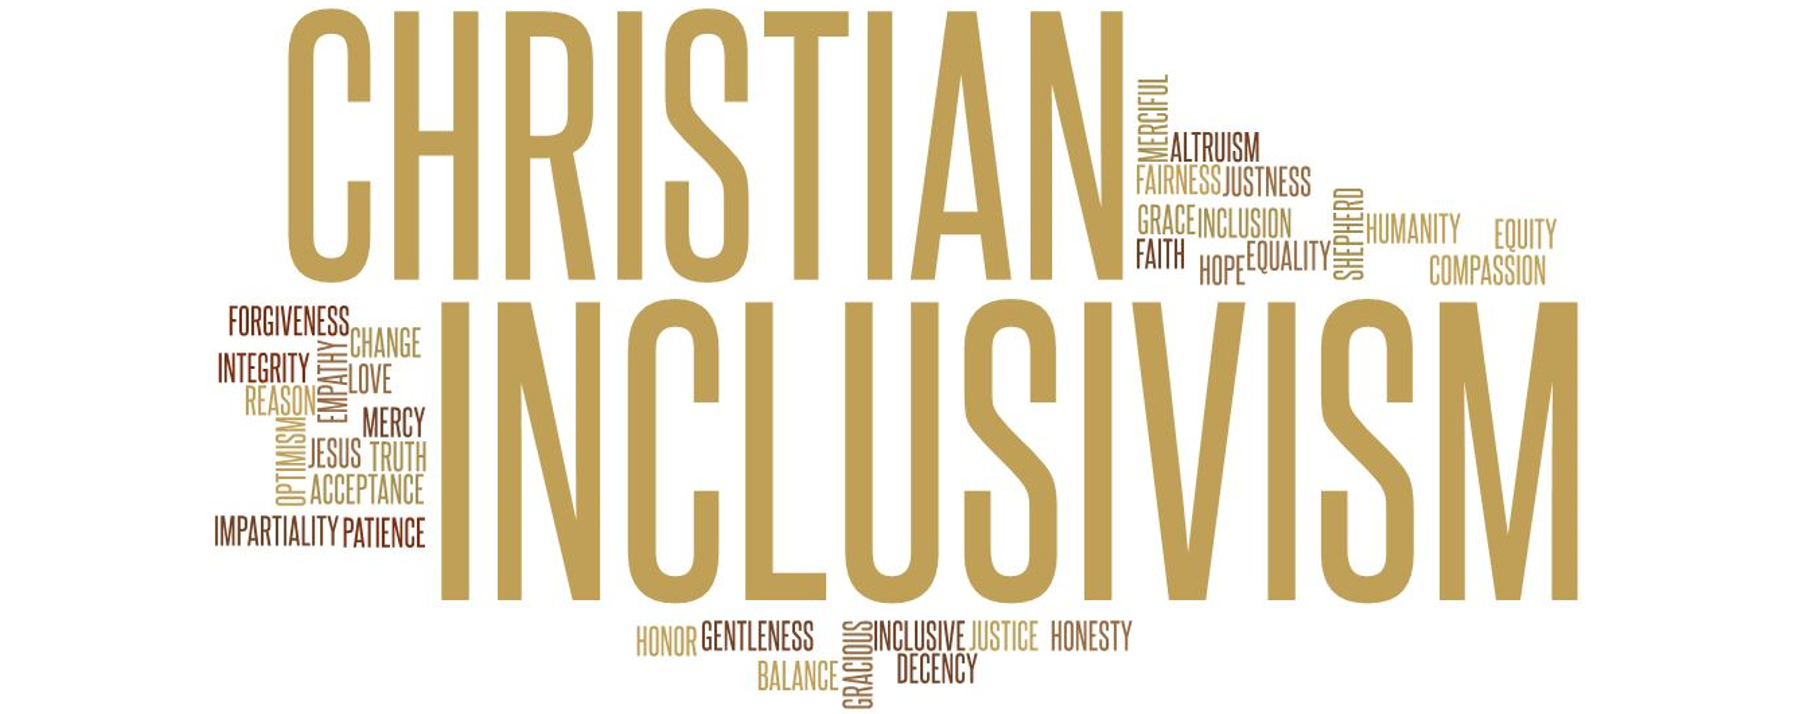 Ecumenical Christian Inclusivism…